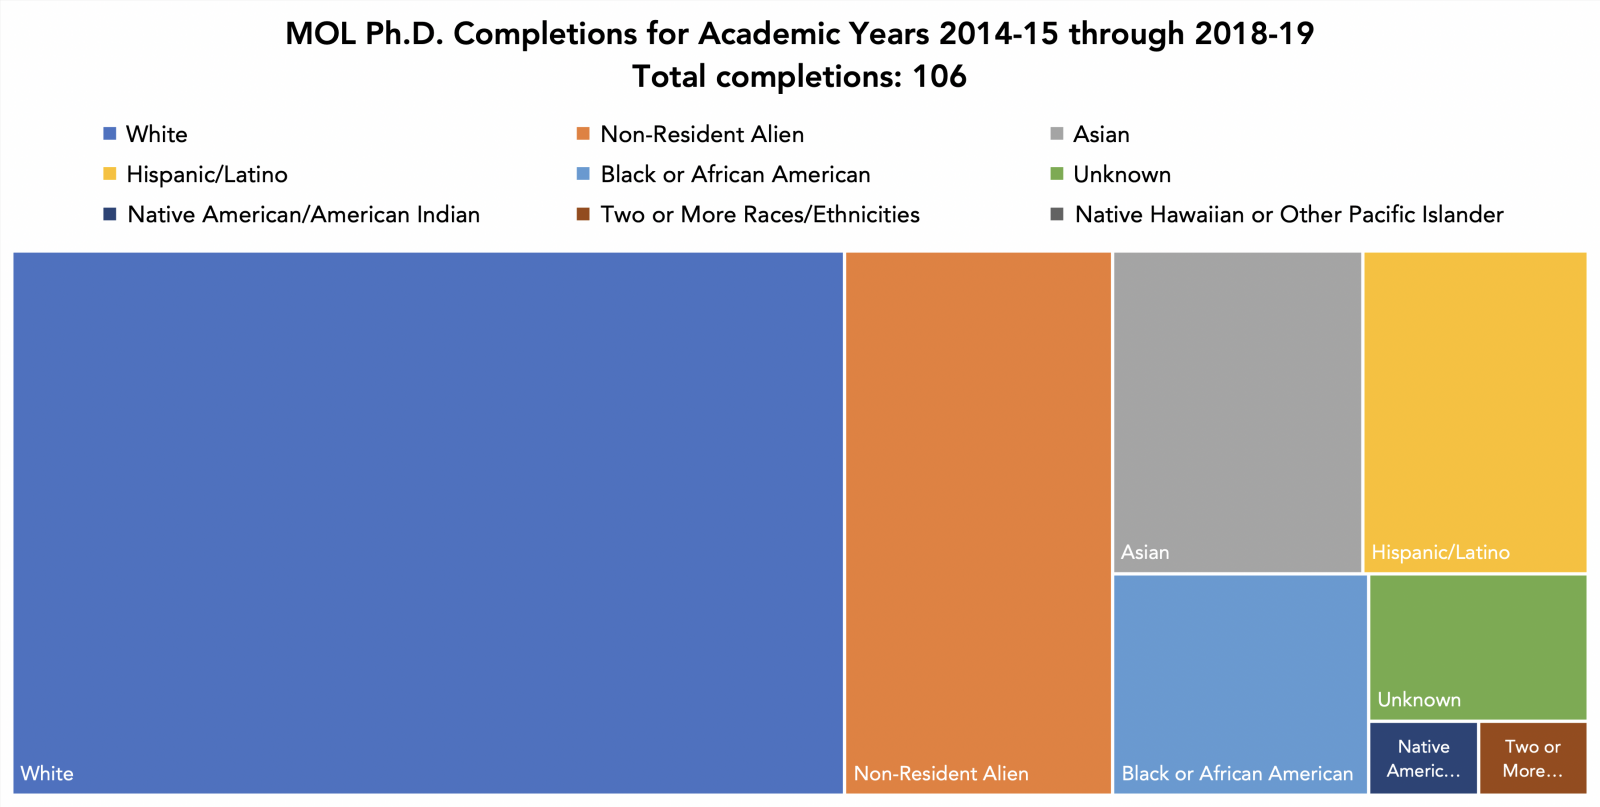 Ph.D. Completions for Academic Years 2014-15 through 2018-19